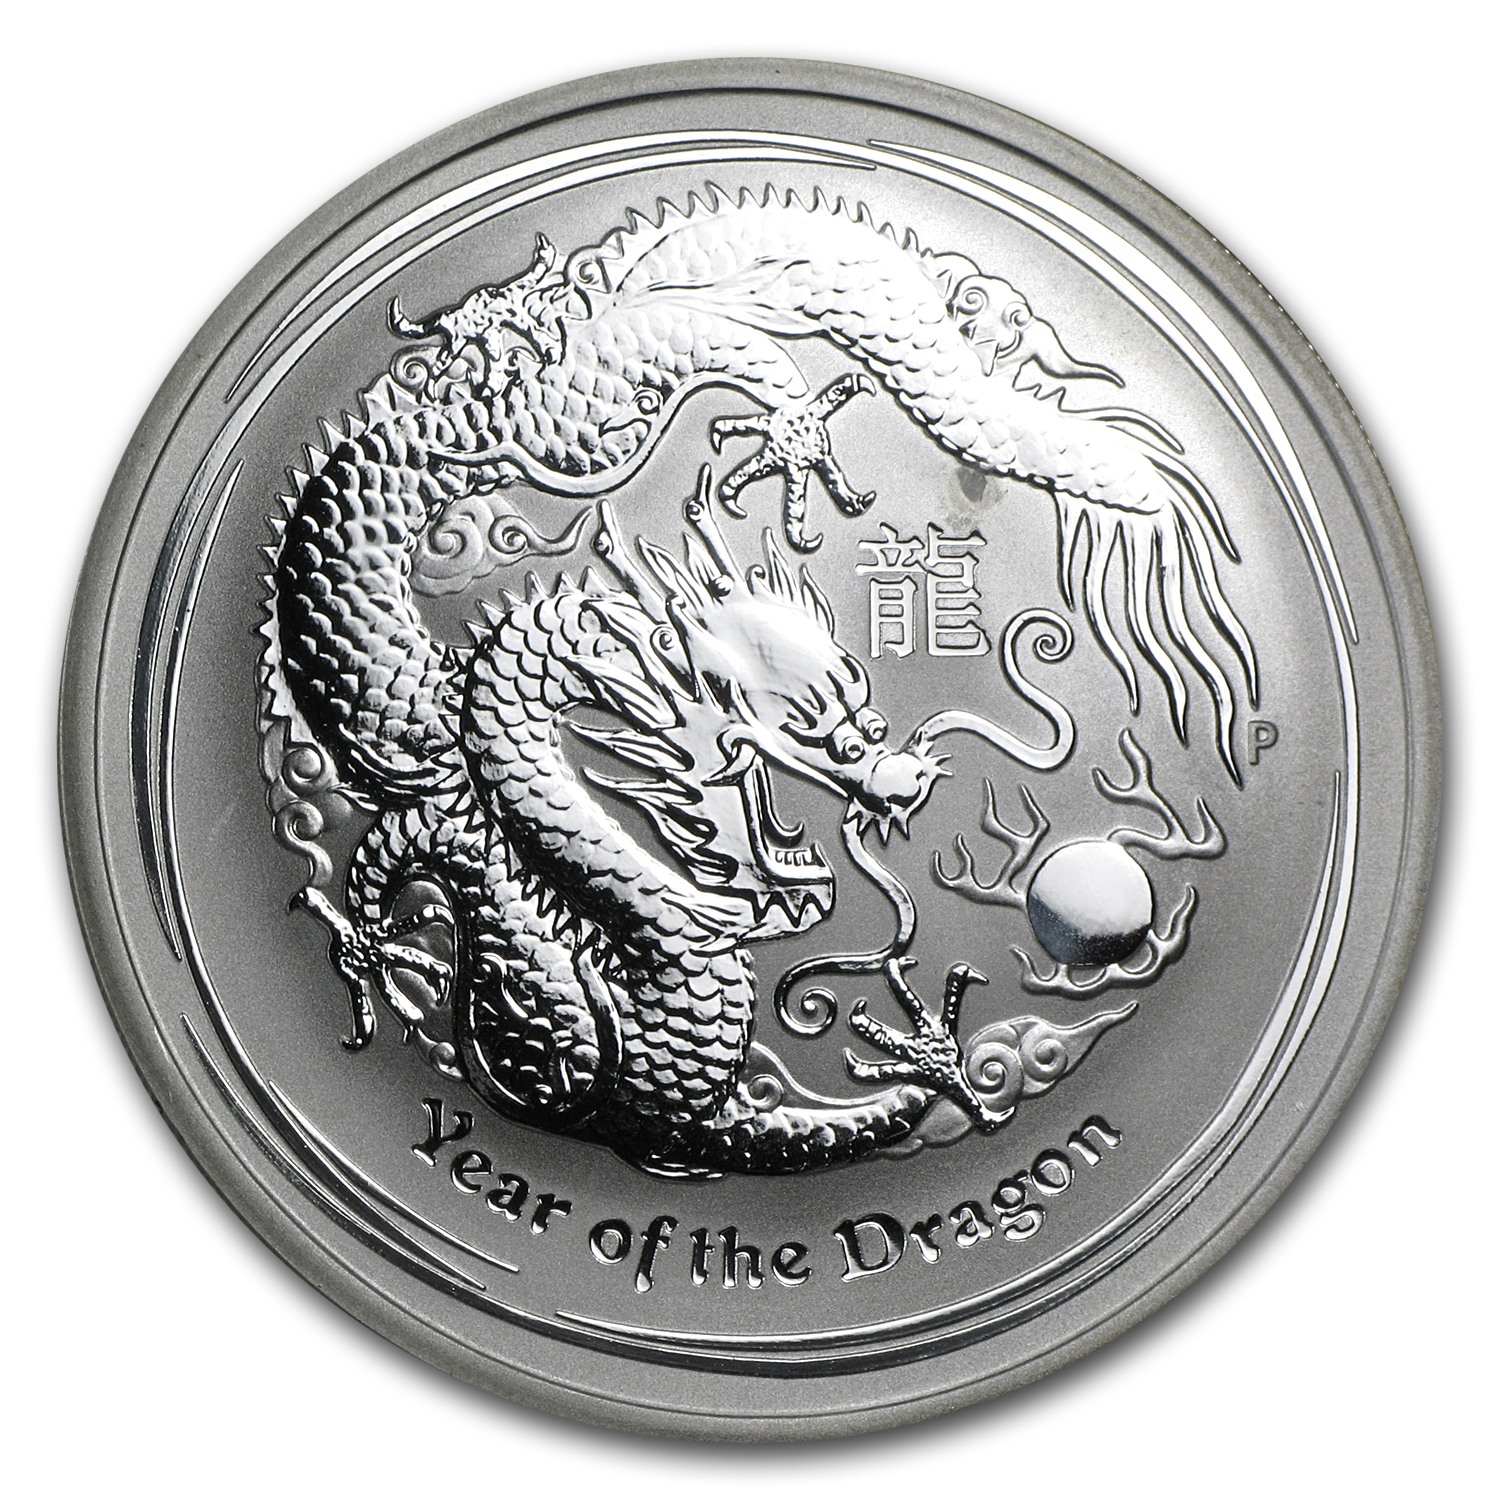 2012 1 oz Silver Lunar Year of the Dragon (Abrasions)